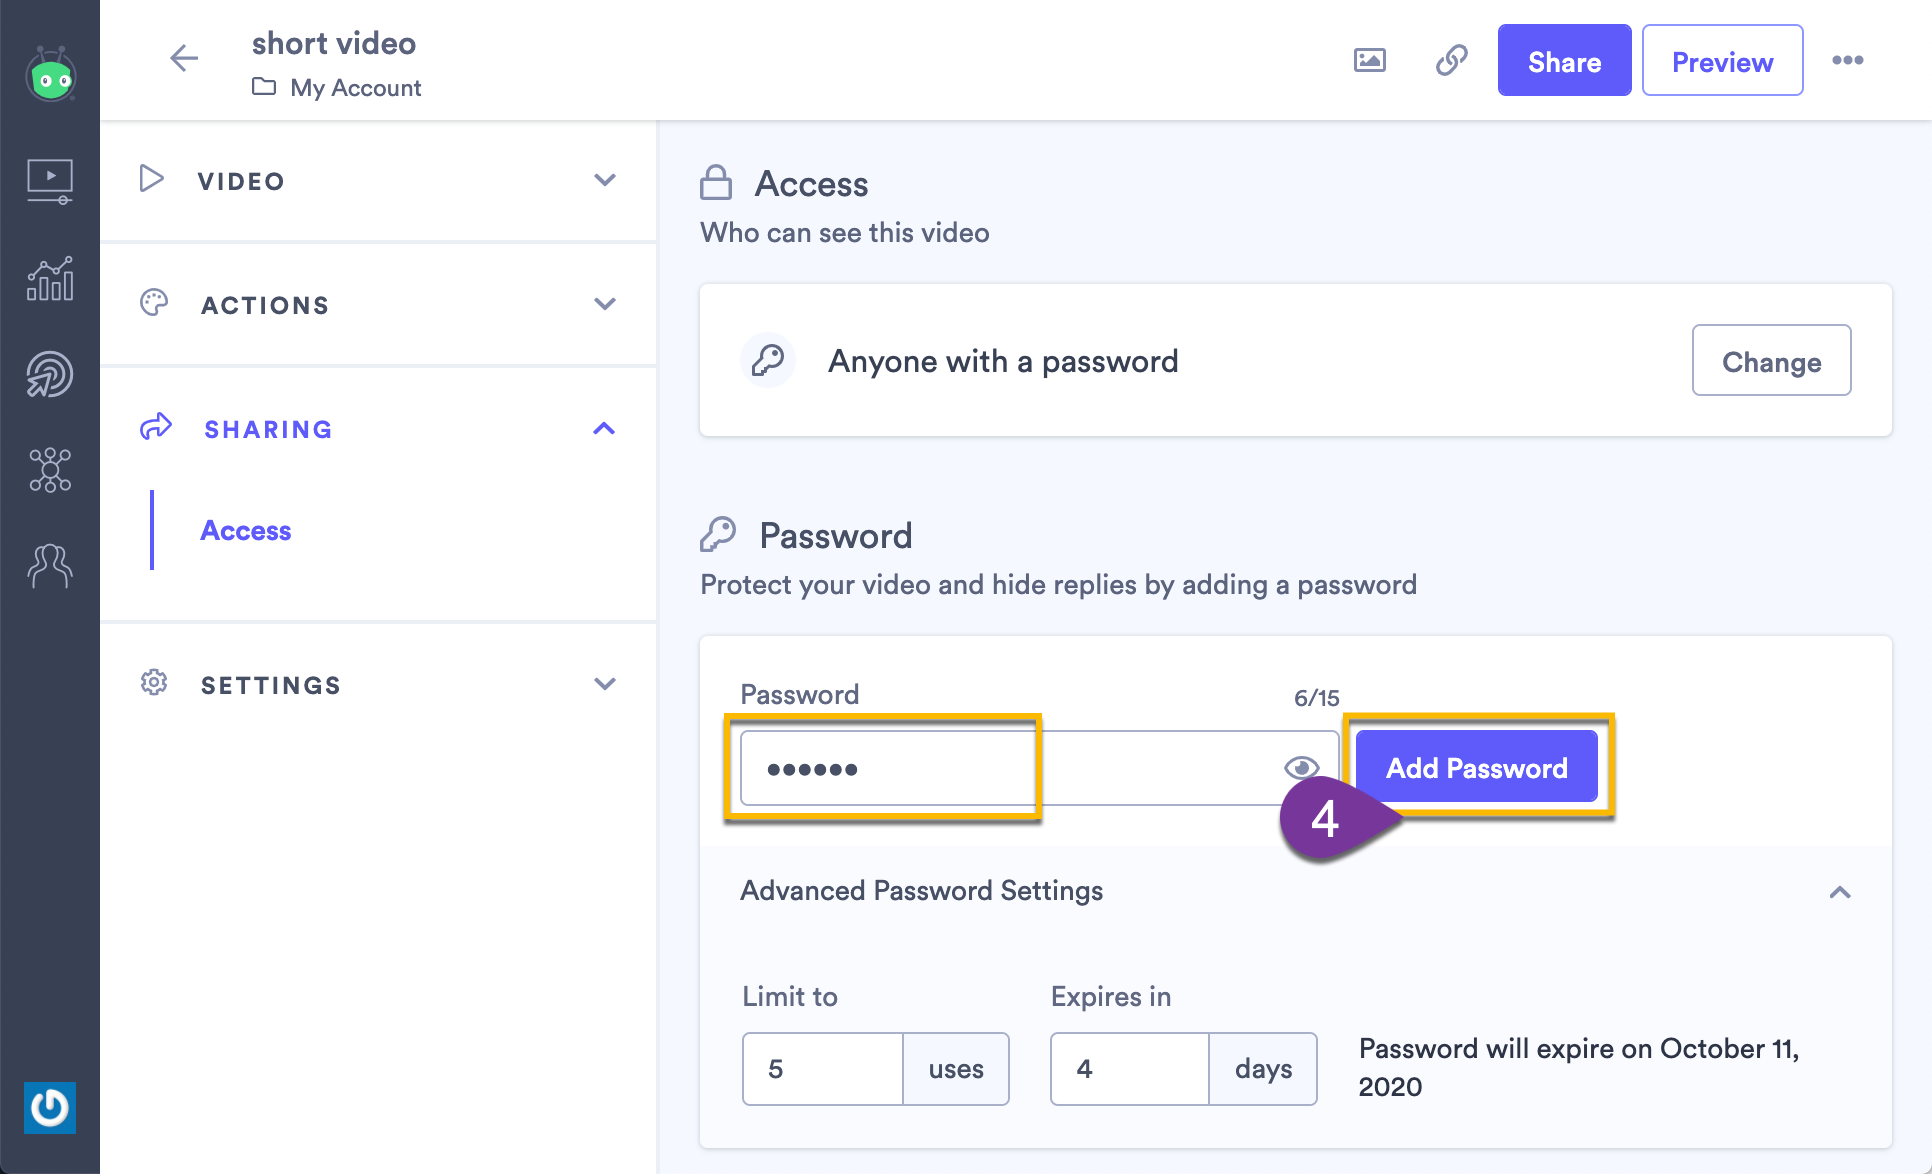 Updating your existing password, then selecting Add Password again to confirm